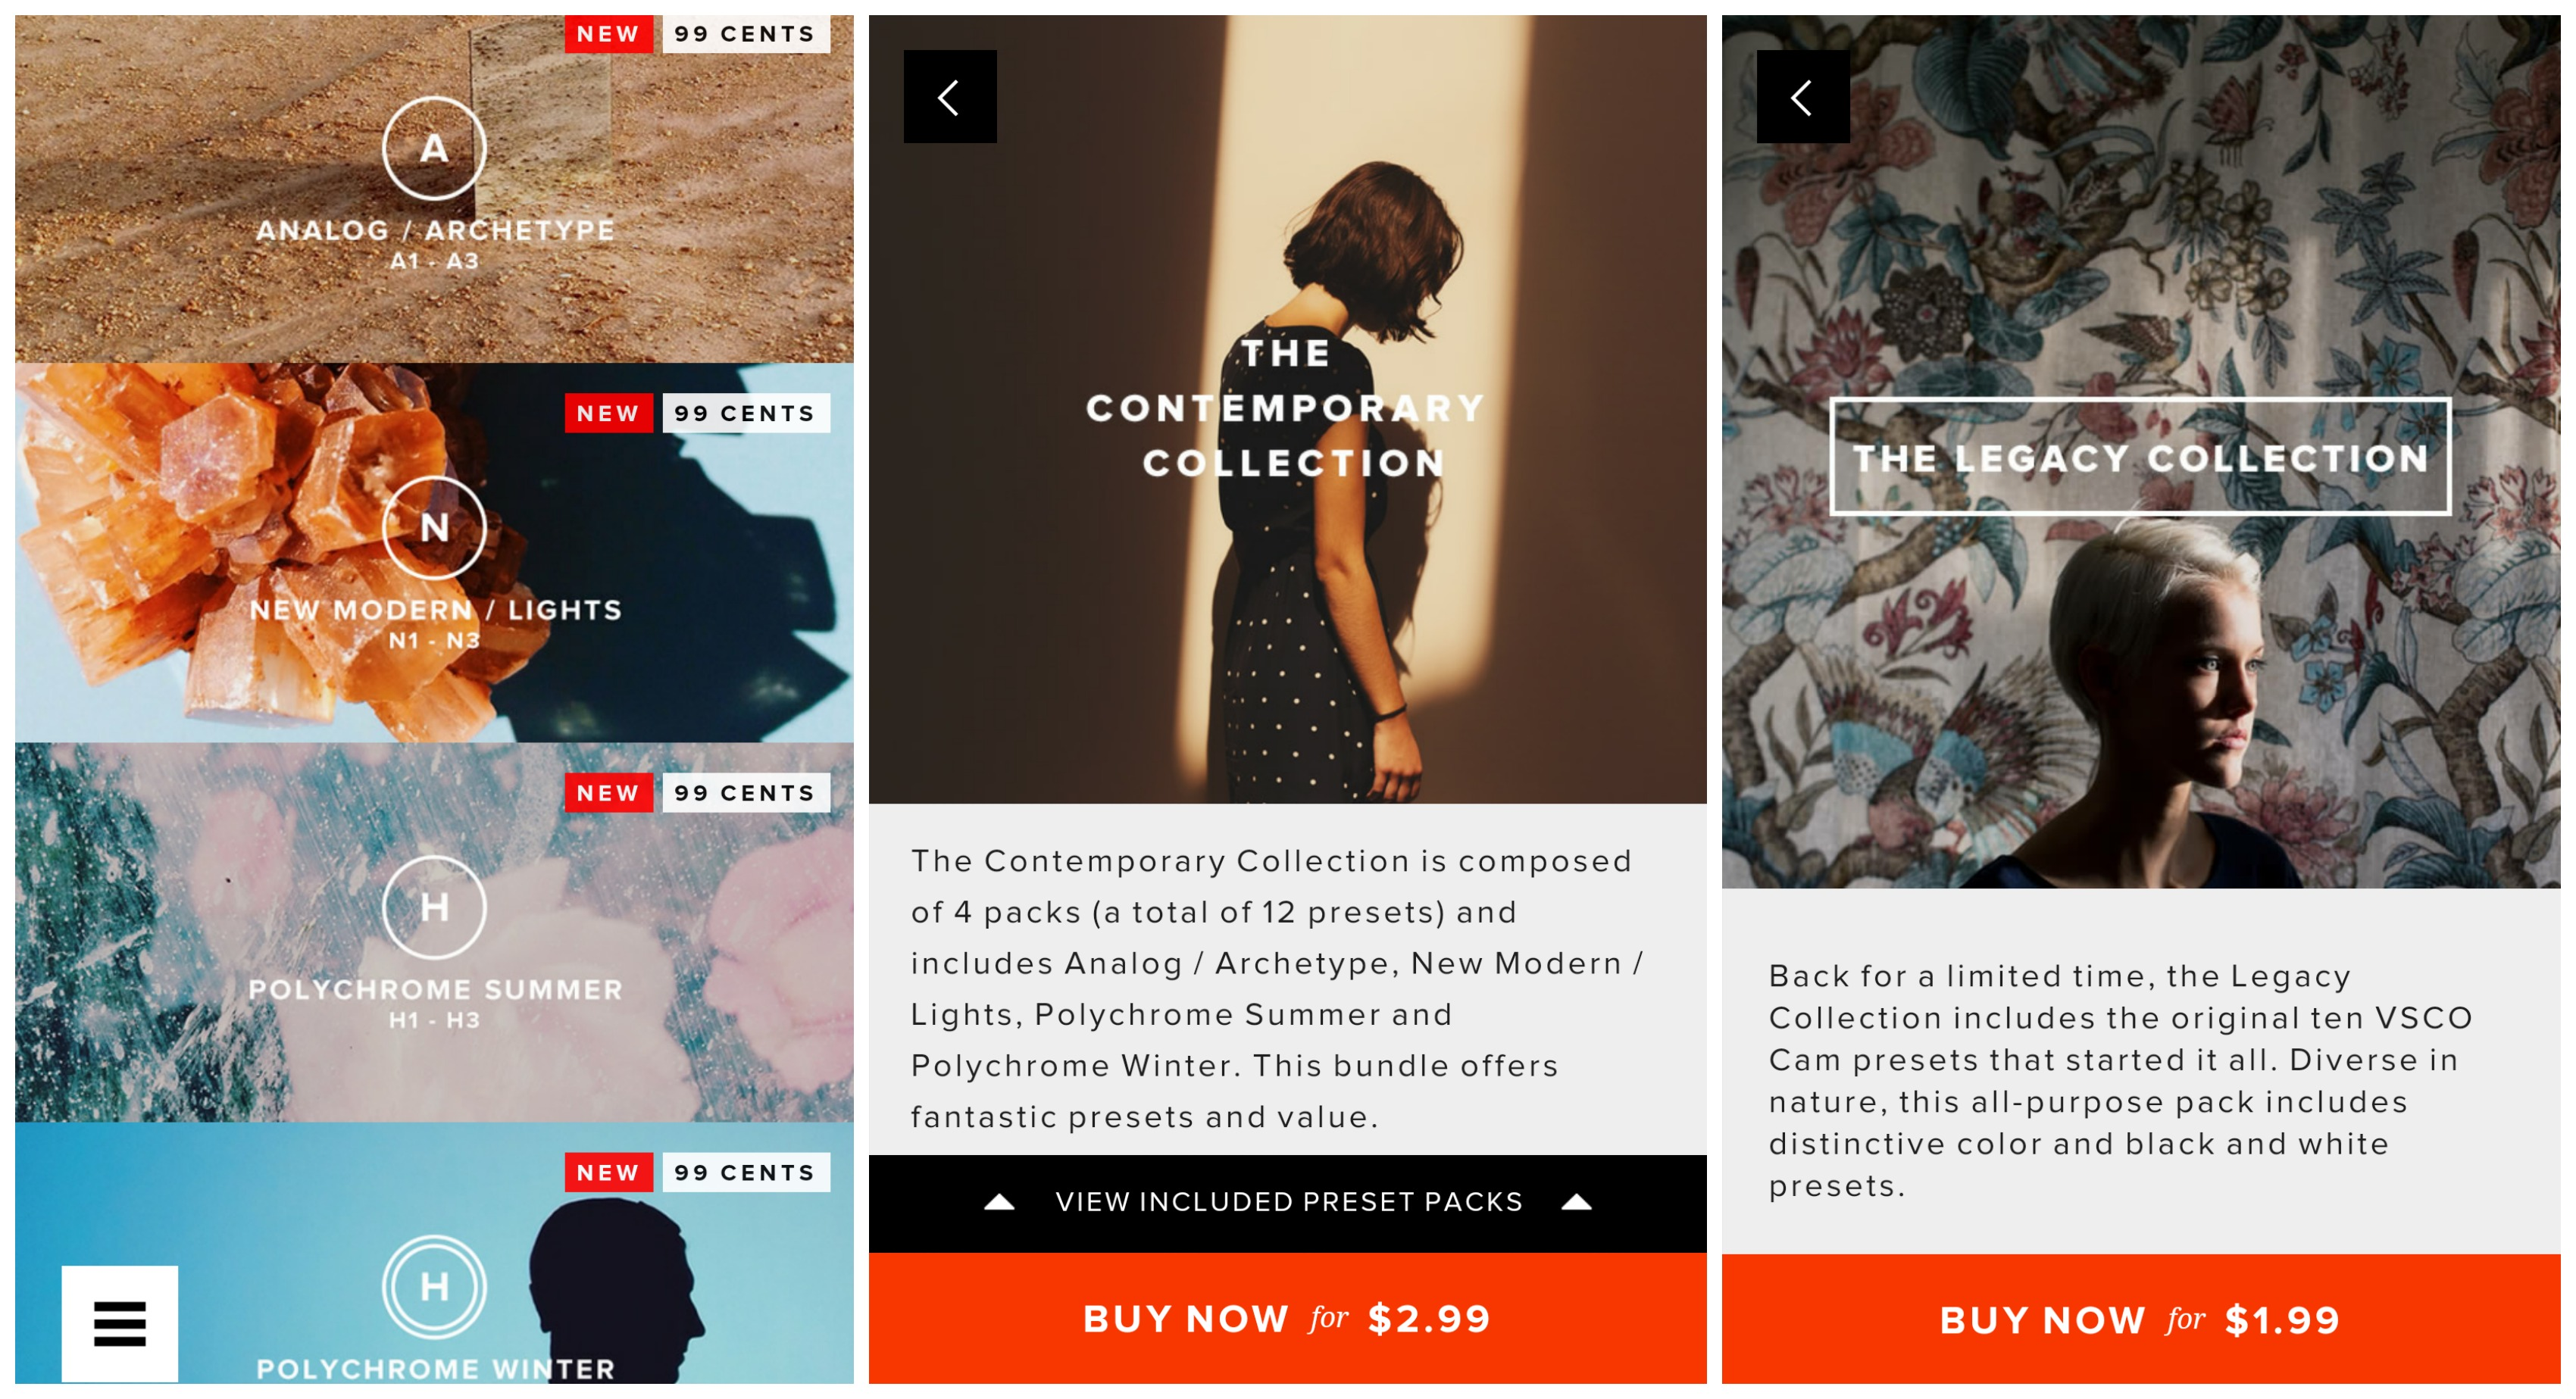 vsco cam adds 5 new preset packs here s a quick preview